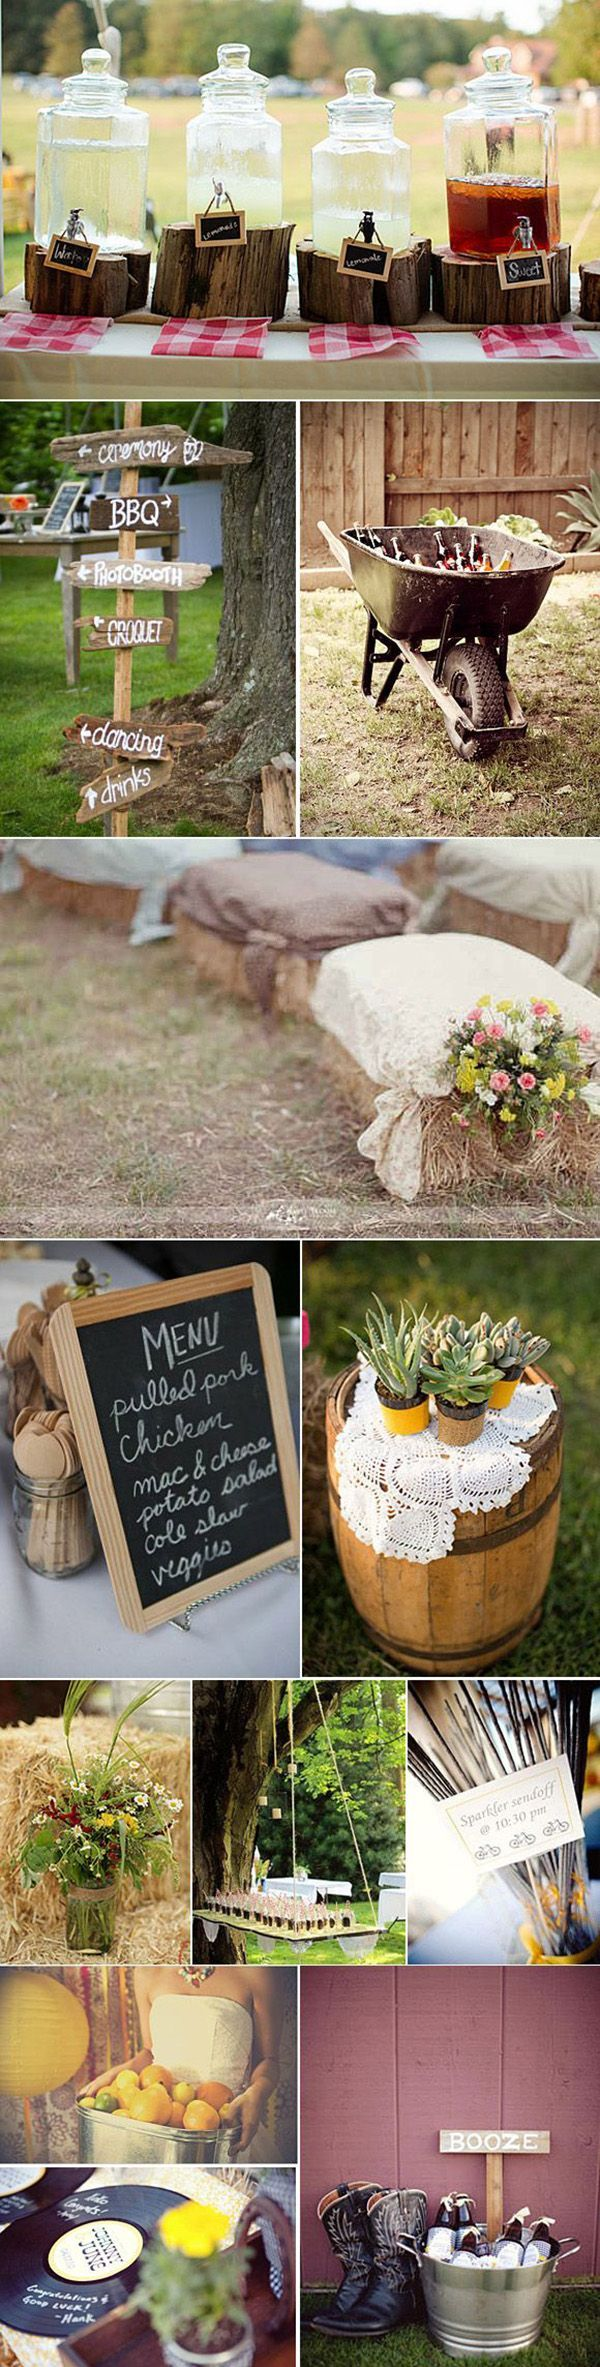 Outside barn wedding ideas  rustic outdoor wedding best photos  Page  of   rehearsal dinner